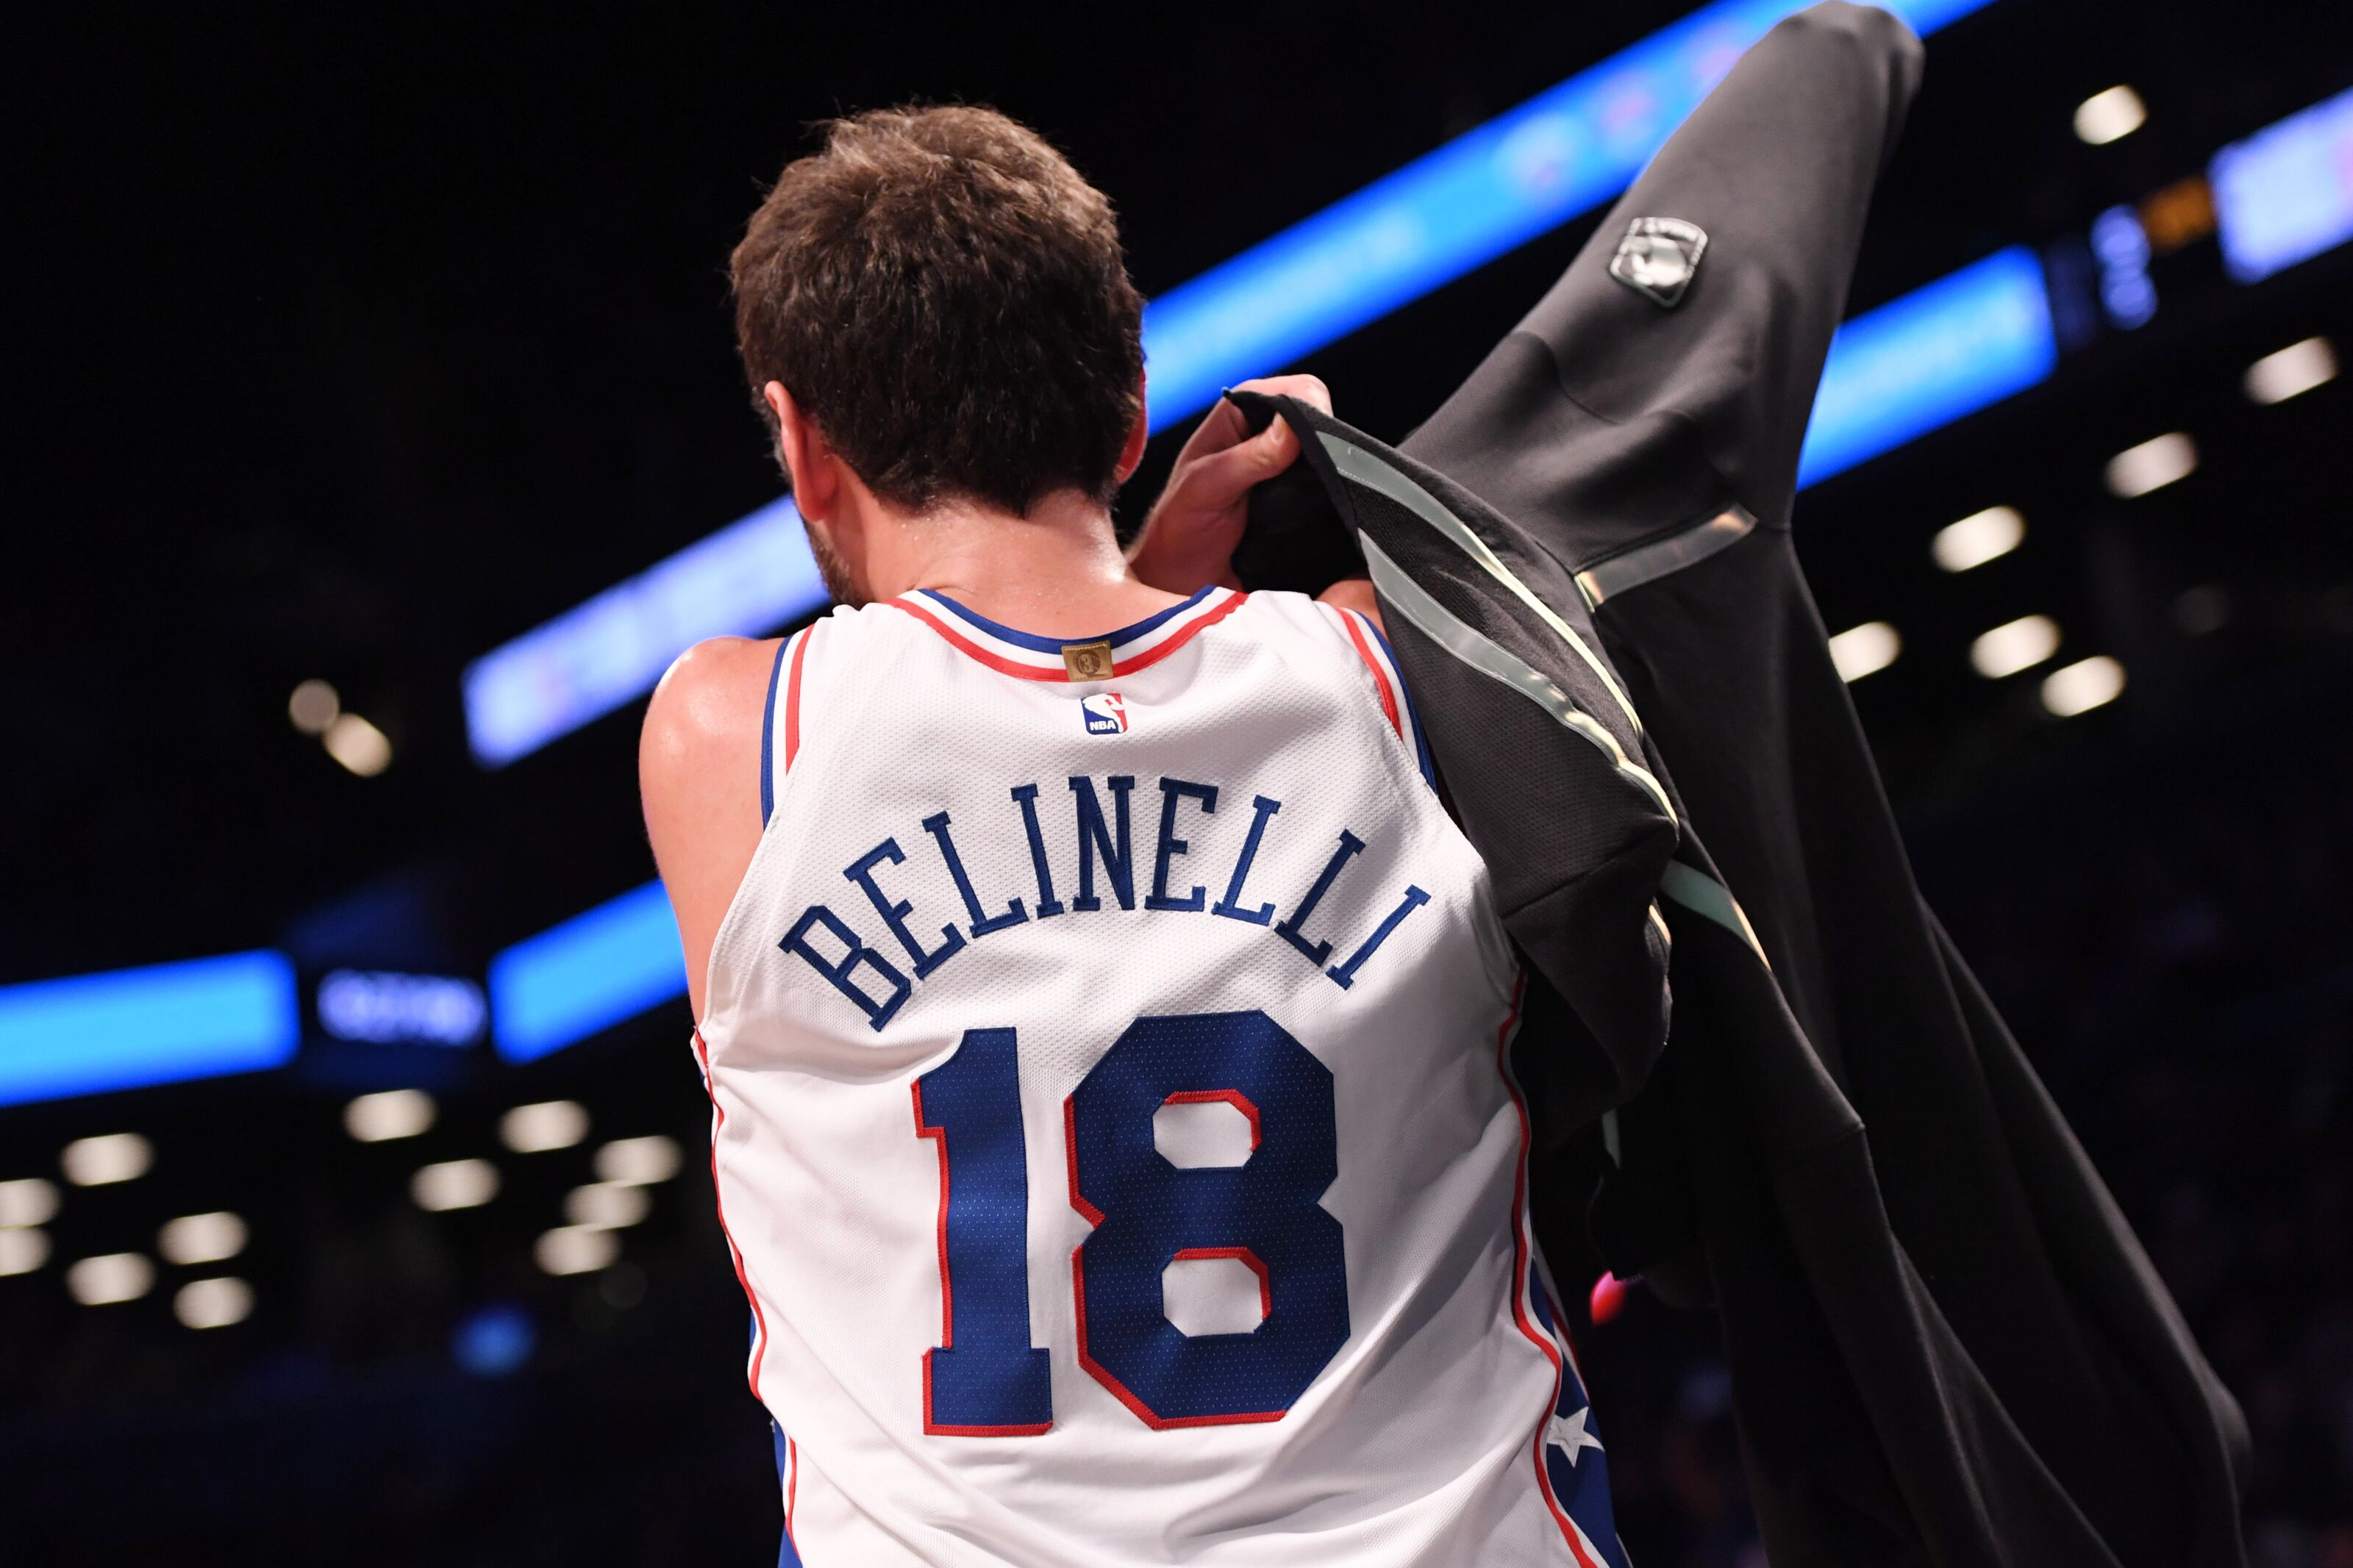 933137854-philadelphia-76ers-v-brooklyn-nets.jpg